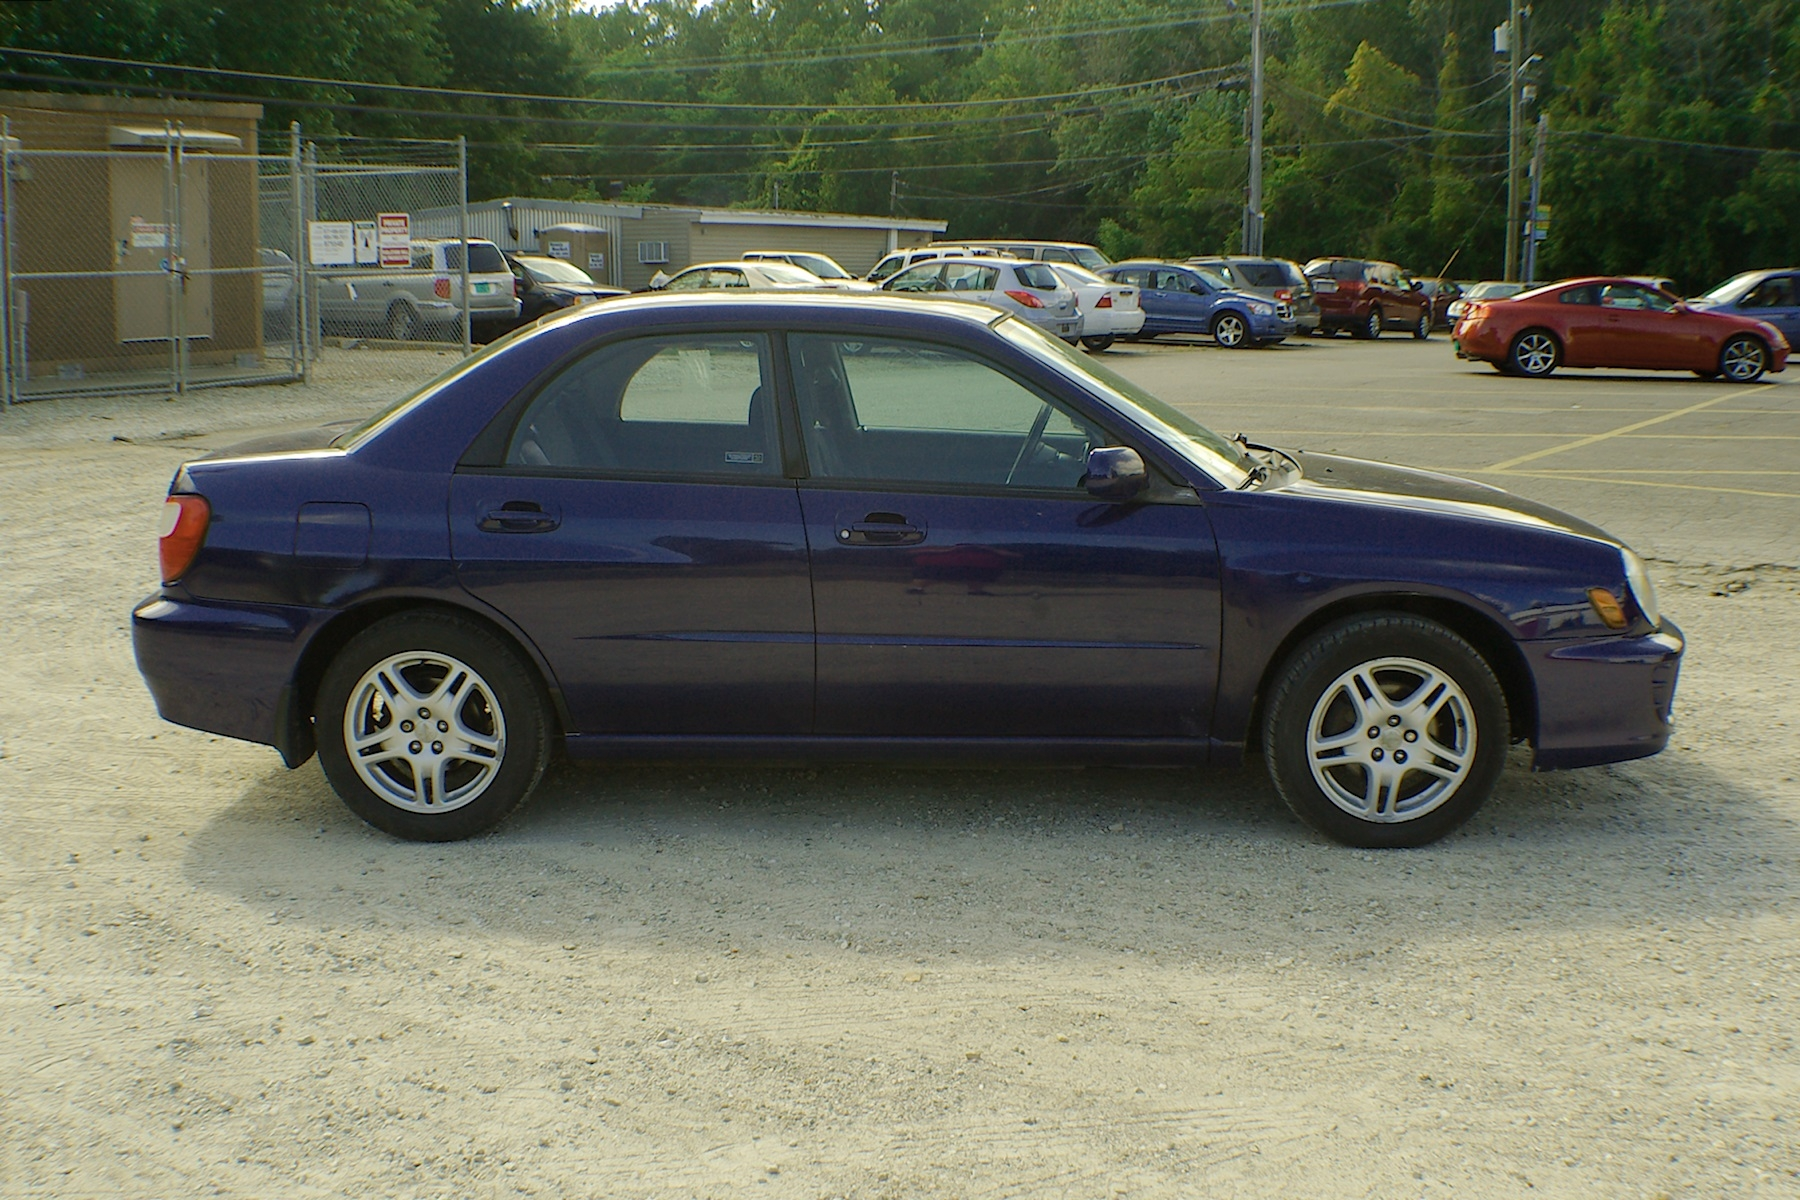 2003 Subaru Impreza Blue AWD Sedan Wagon Used Car Sale Bannockburn Barrington Beach Park